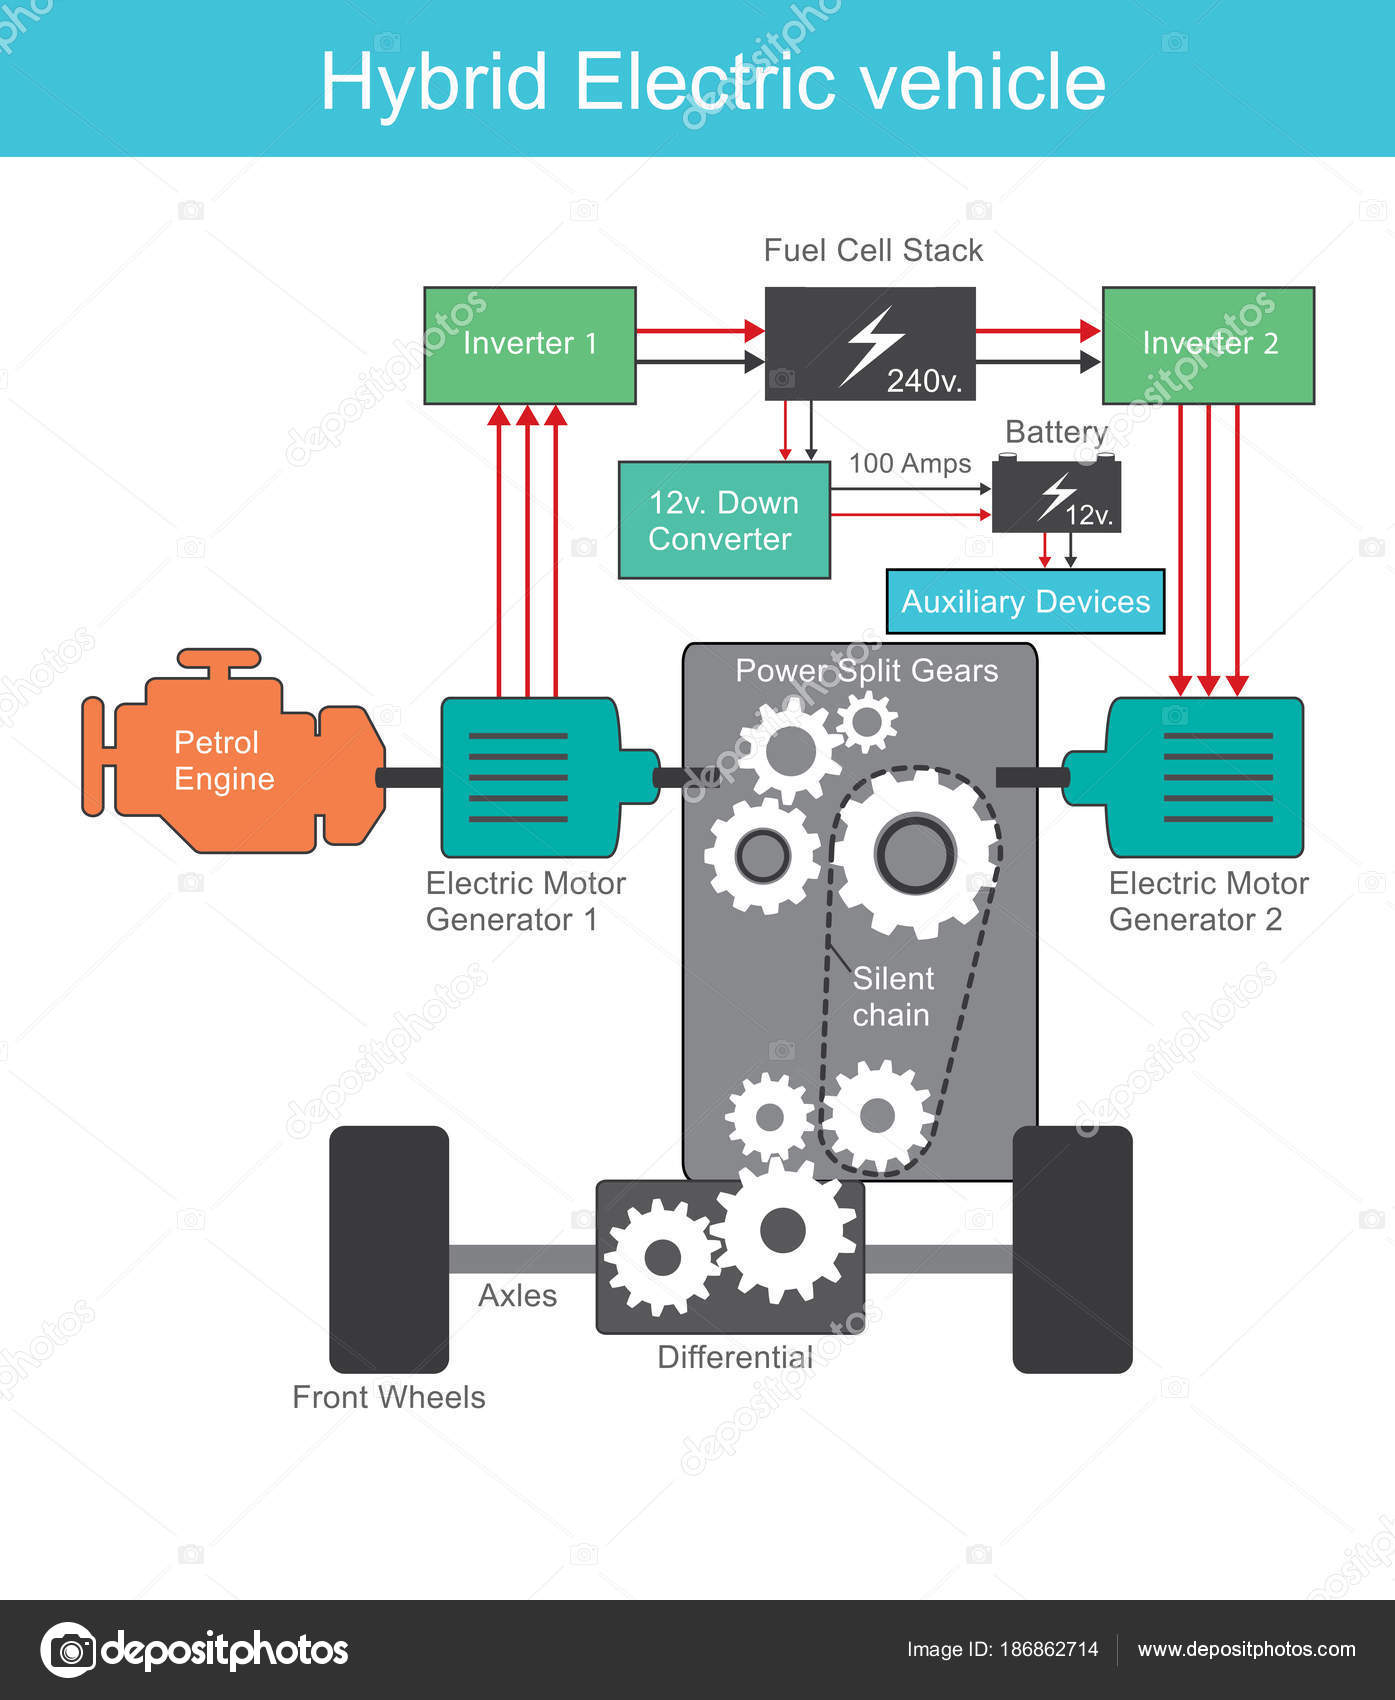 Hybrid Electric Engine System Illustration Stock Vector Illustrated Diagram Of A Basic Internal Combustion Combines Conventional Ice Propulsion With An Vehicle Drivetrain